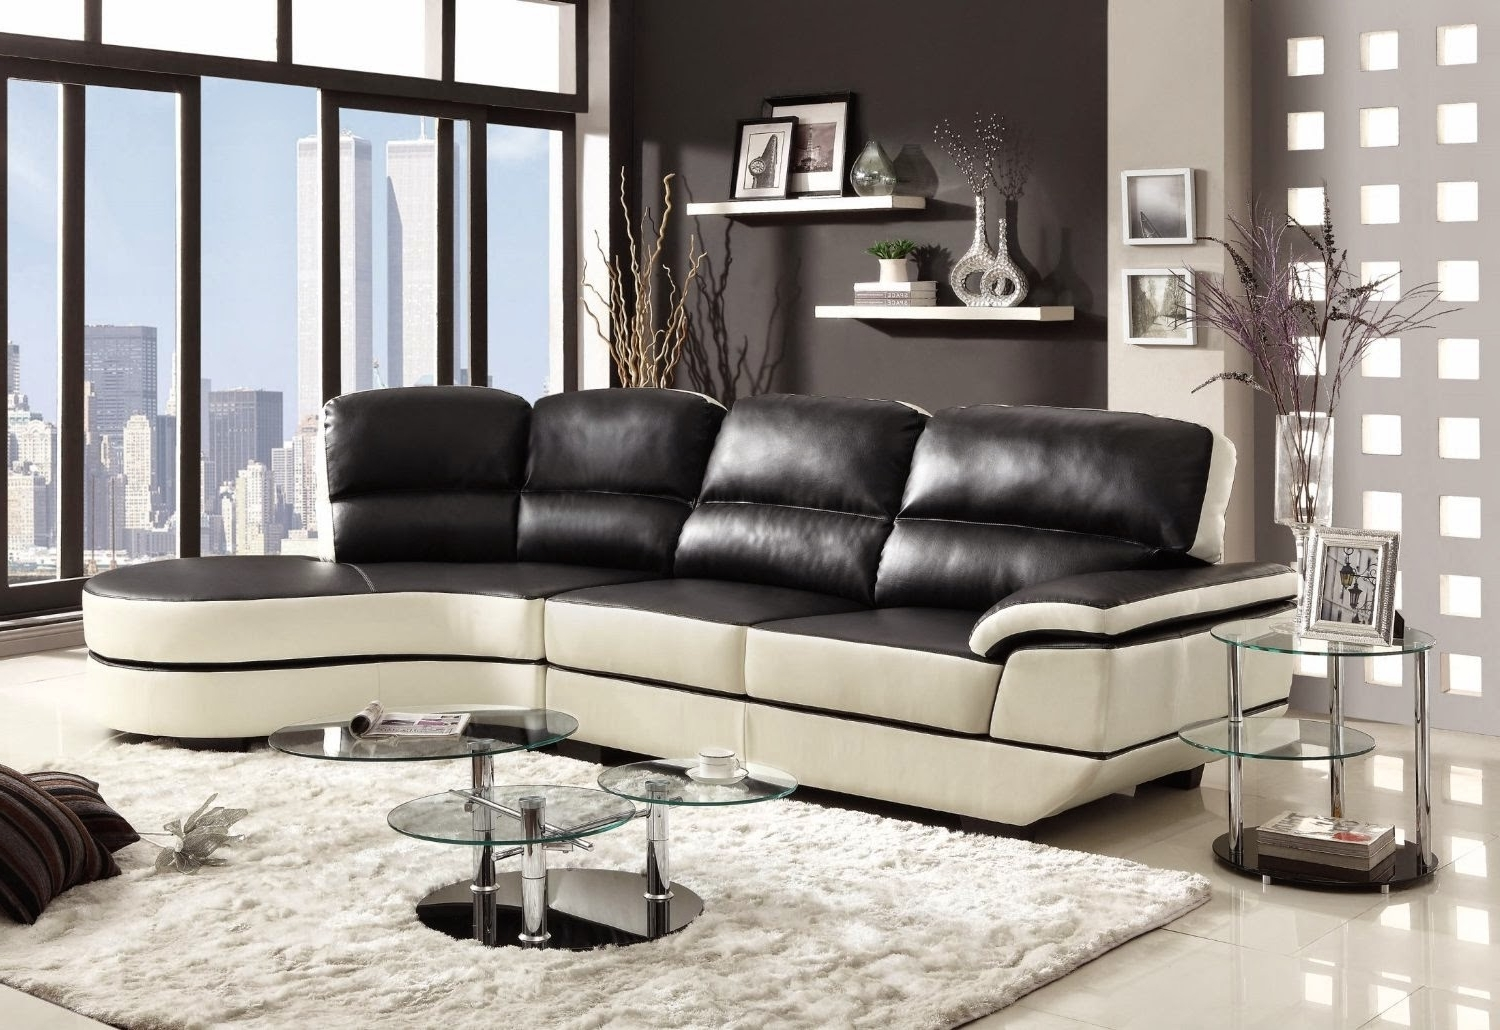 Furniture : Sectional Sofa Eugene Or Sectional Sofa 2 Piece Set Inside Famous Eugene Oregon Sectional Sofas (View 5 of 15)